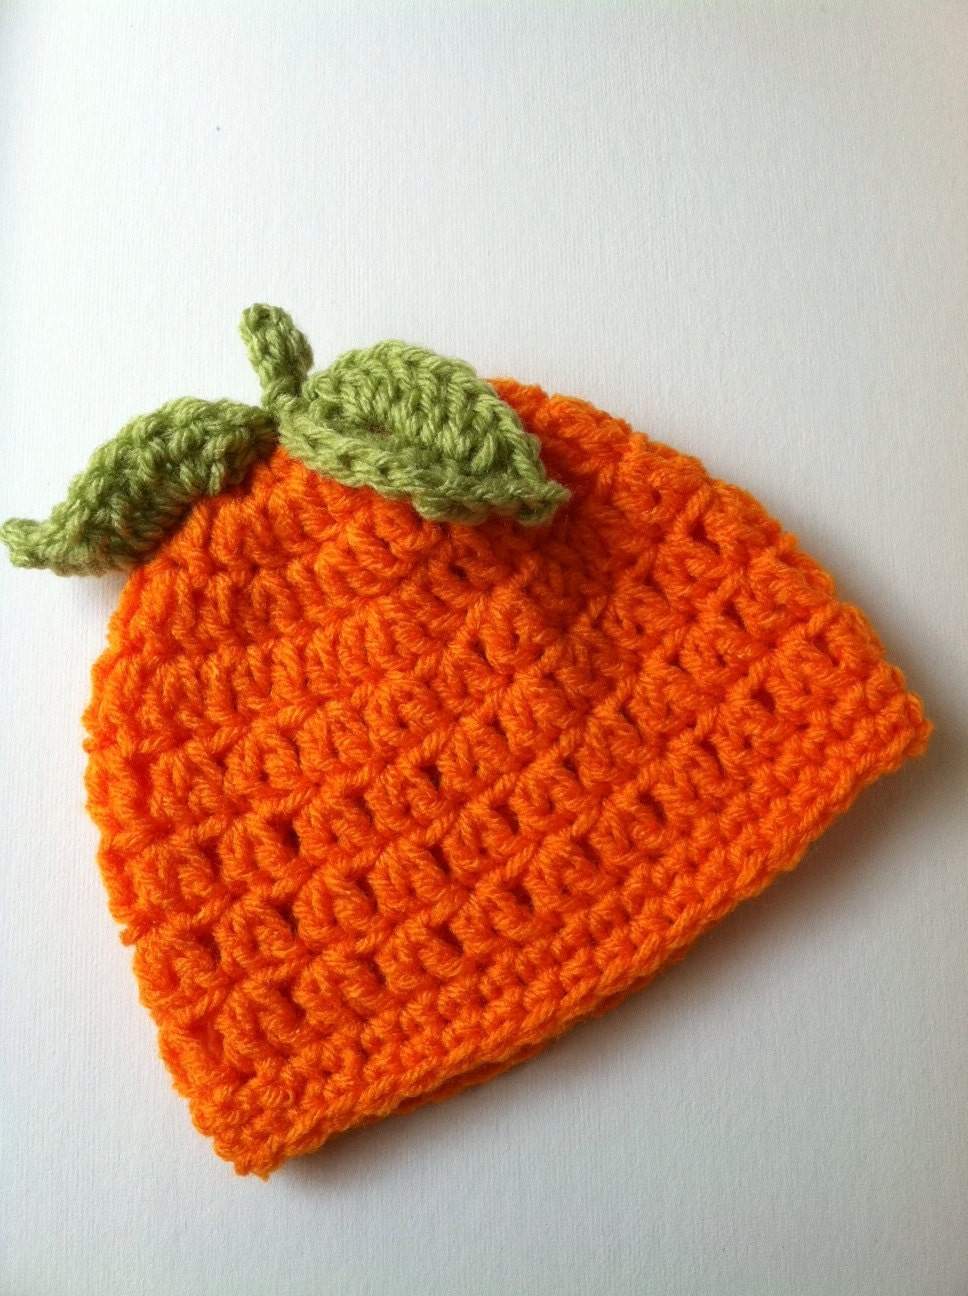 Crocheting Baby Hats : Halloween Crochet Baby Hat Orange Pumpkin by LakeviewCottageKids